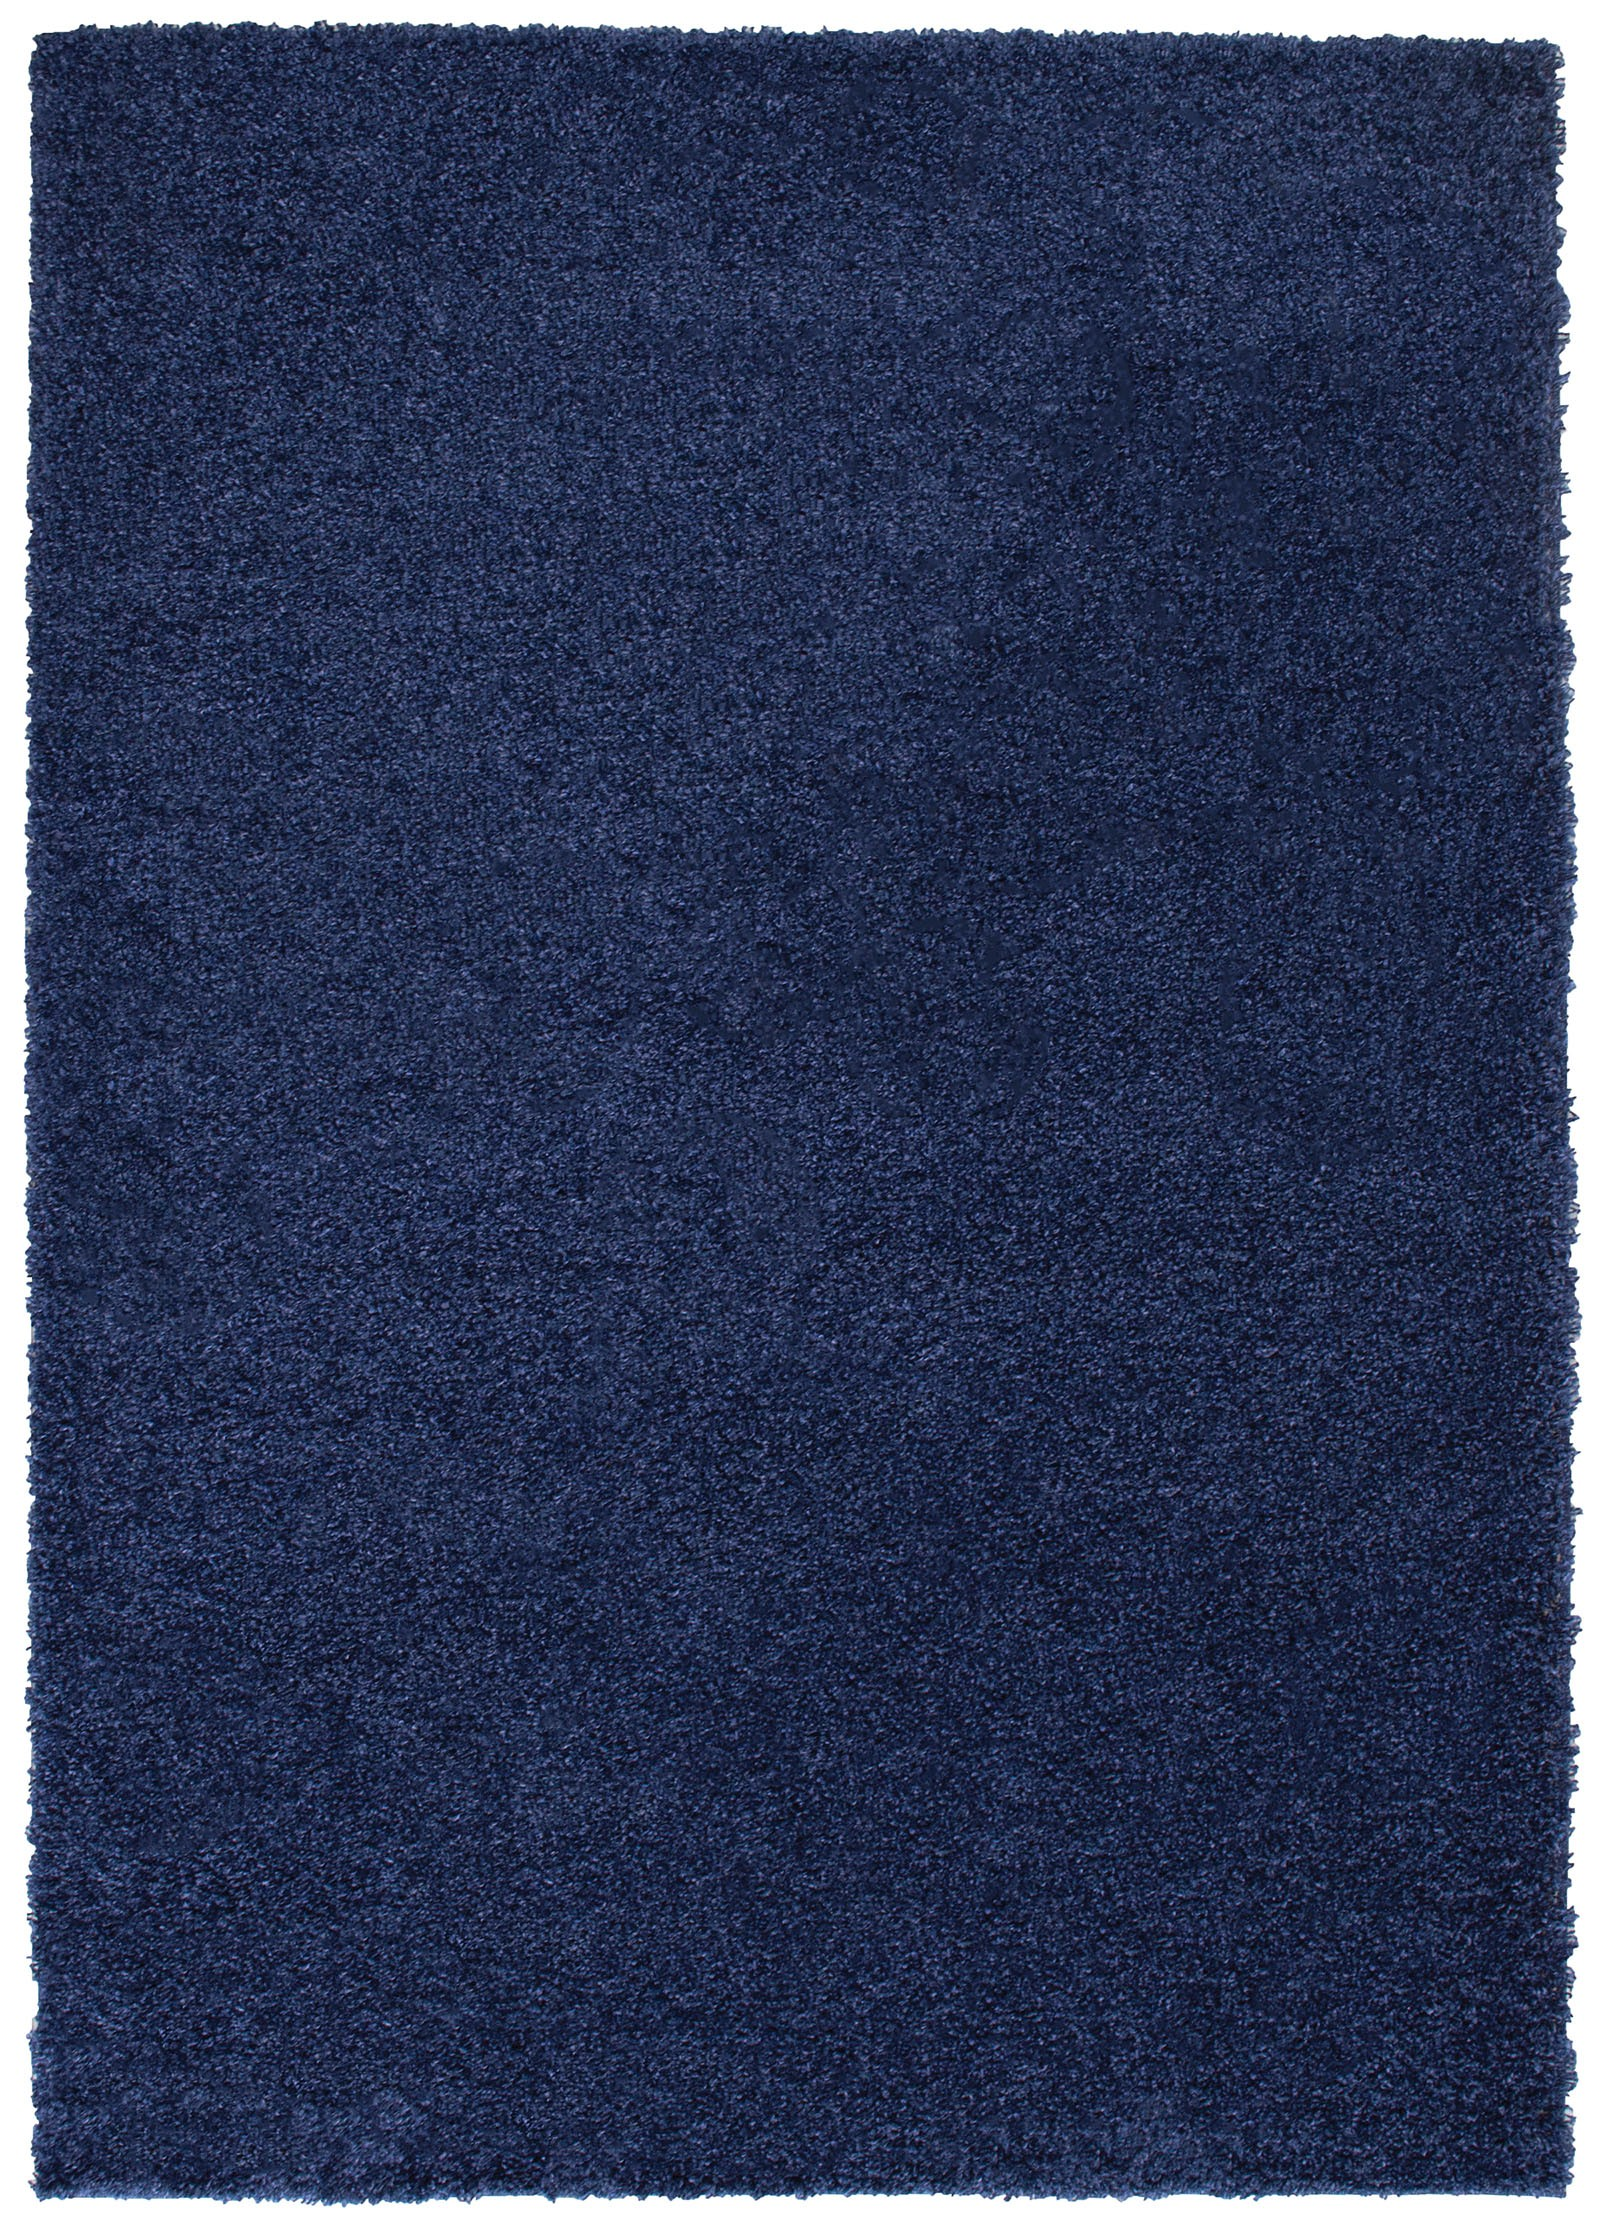 Zandi Shagg Area Rug in Dark Blue